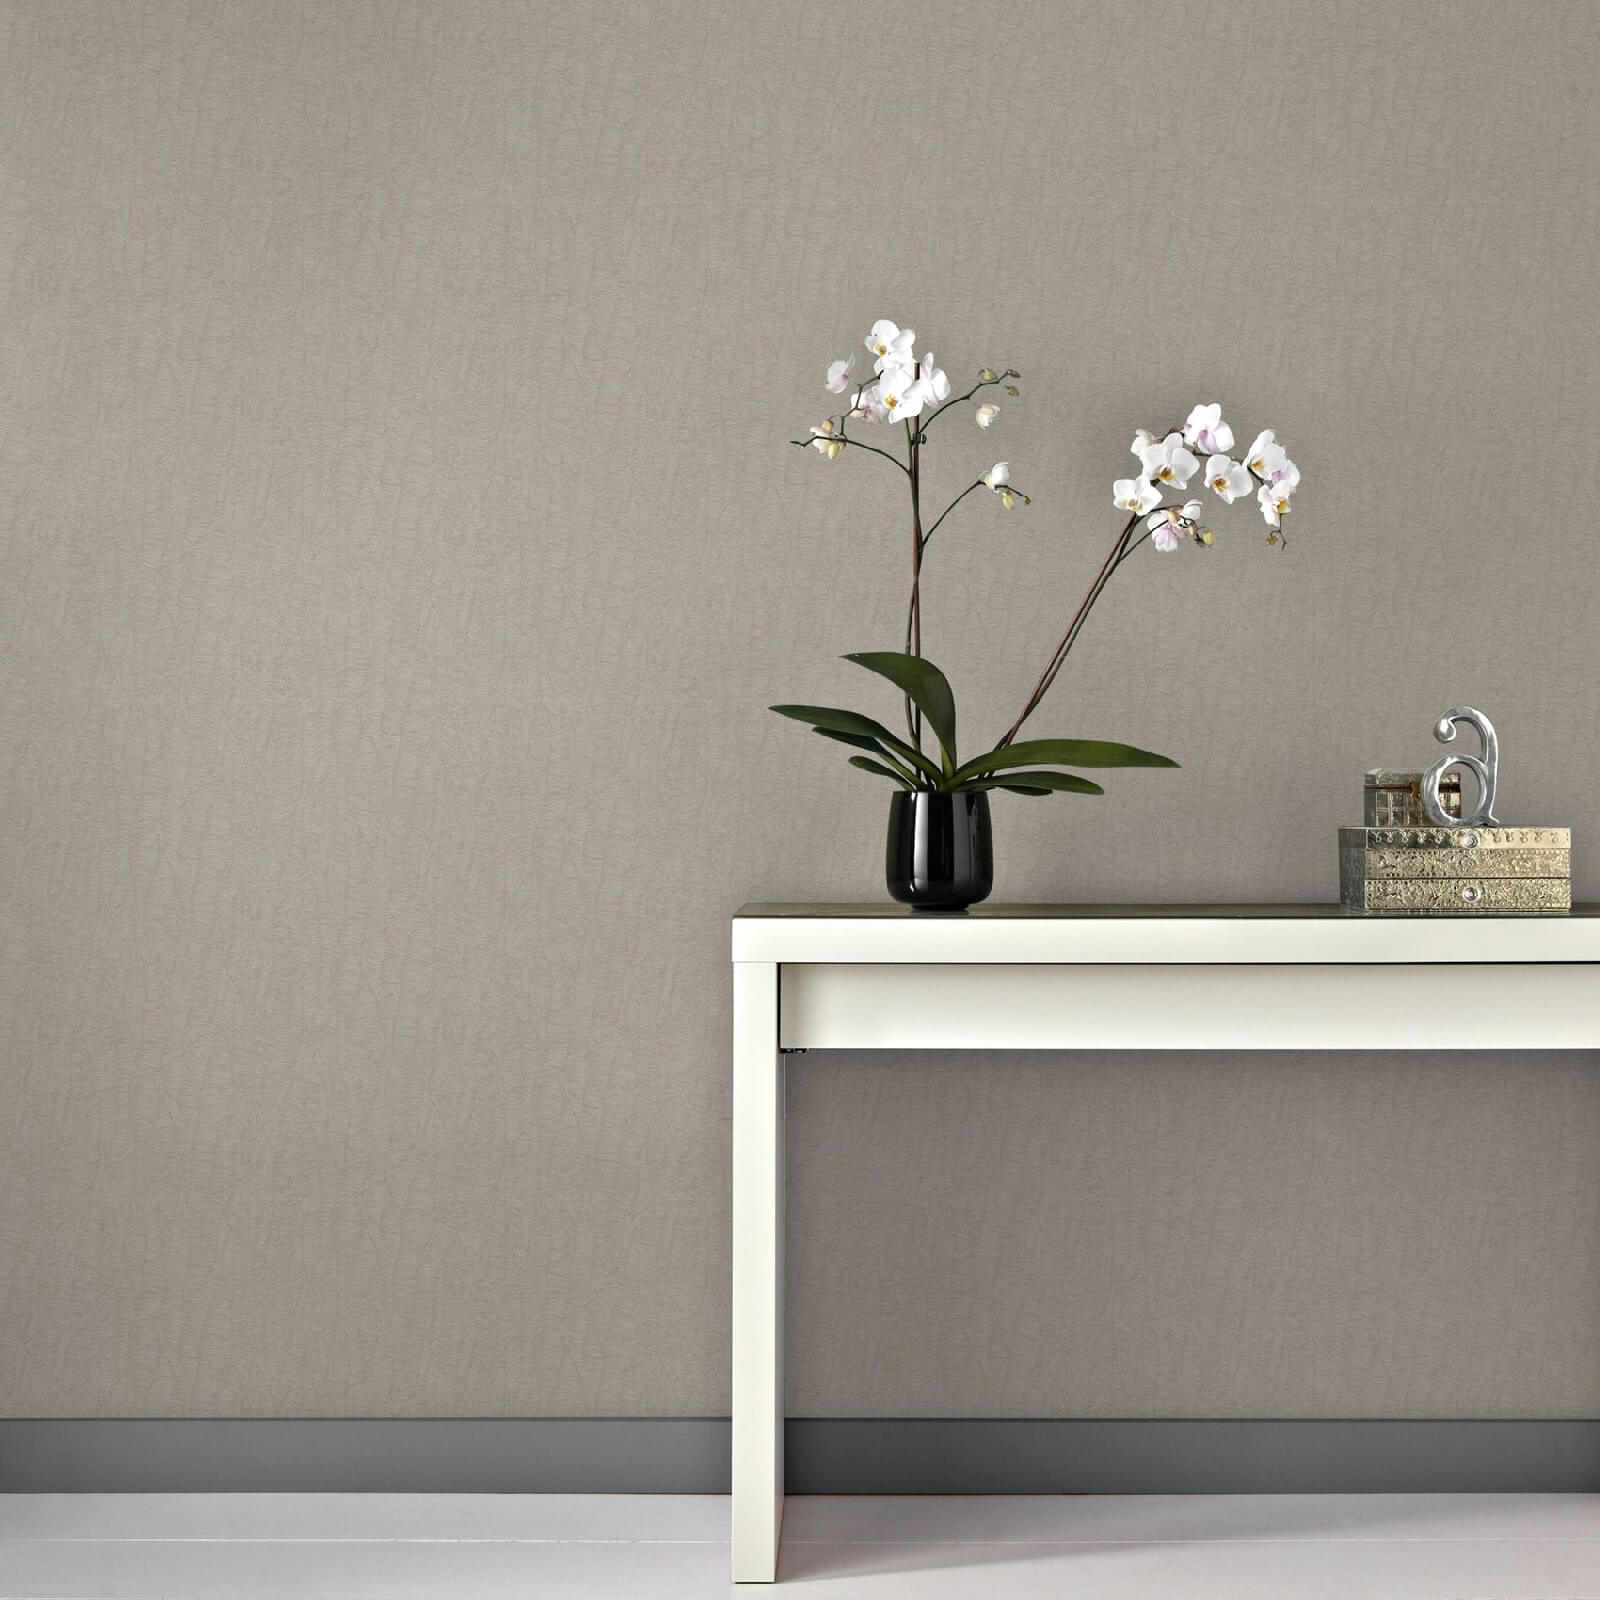 Boutique Corsetto Textured Metallic Plain Wallpaper - Taupe